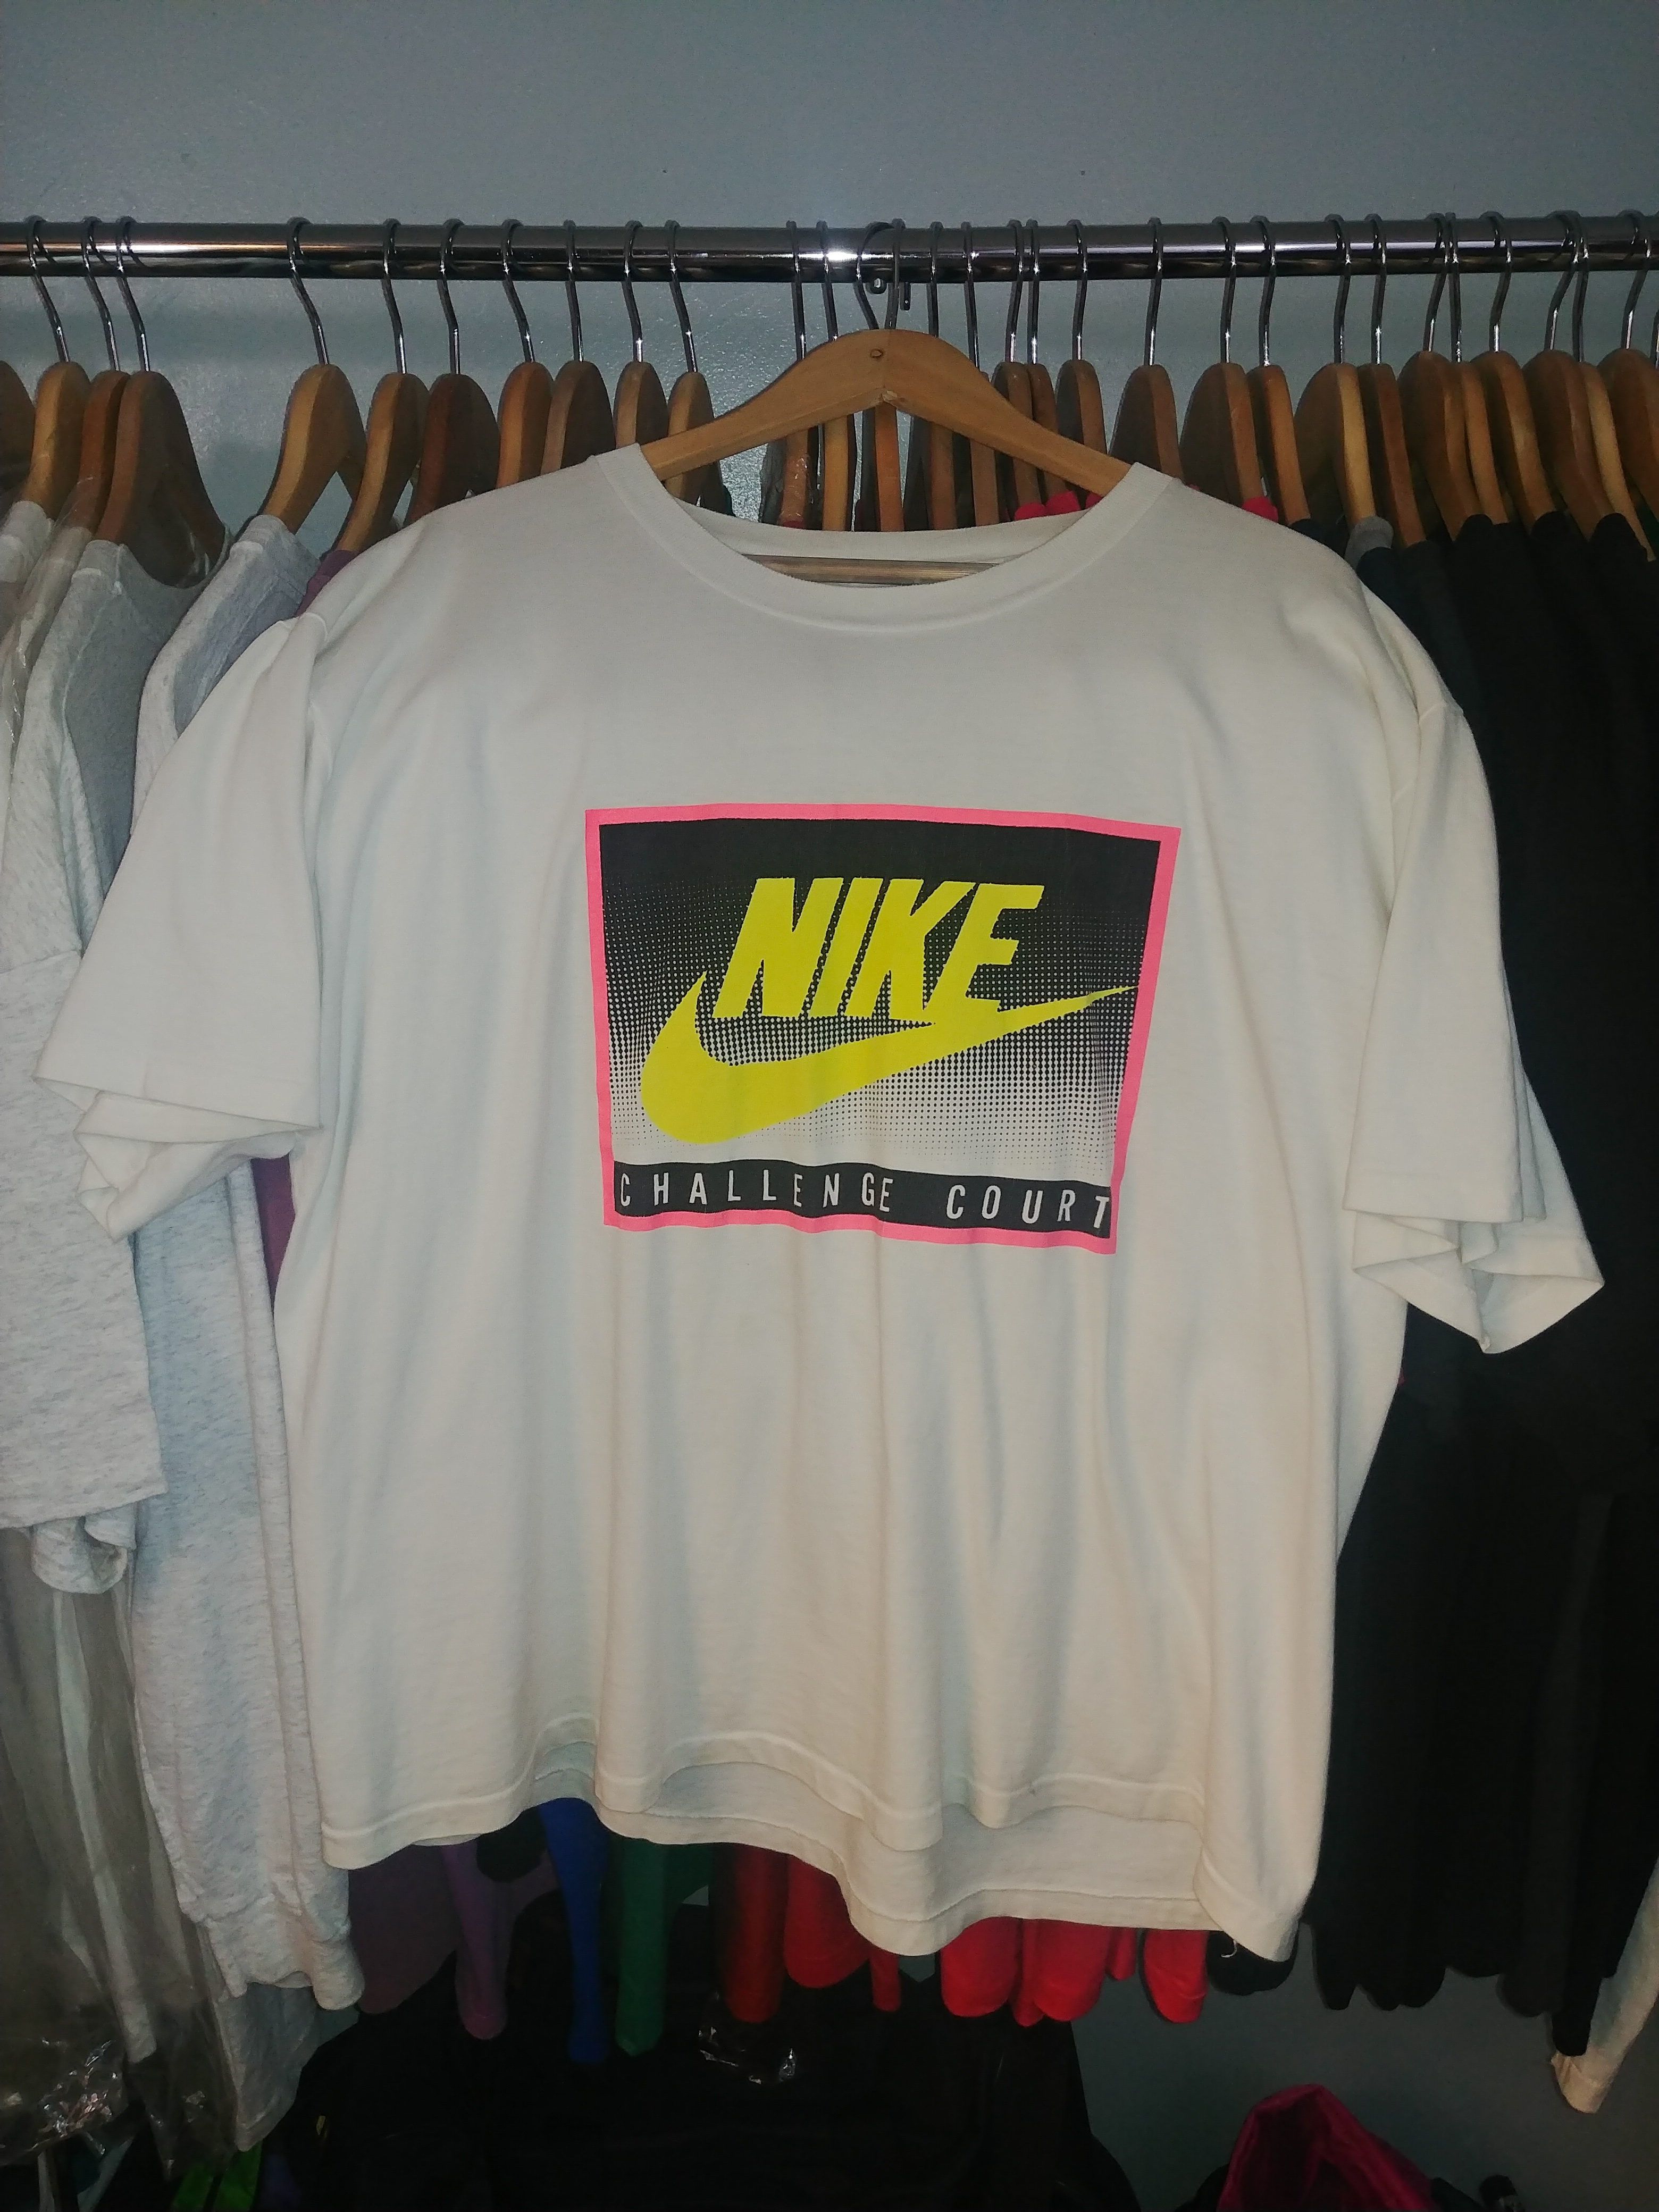 96c9209c Nike Vintage 90's Nike Gray Tag Challenge Court Andre Agassi T-shirt ...